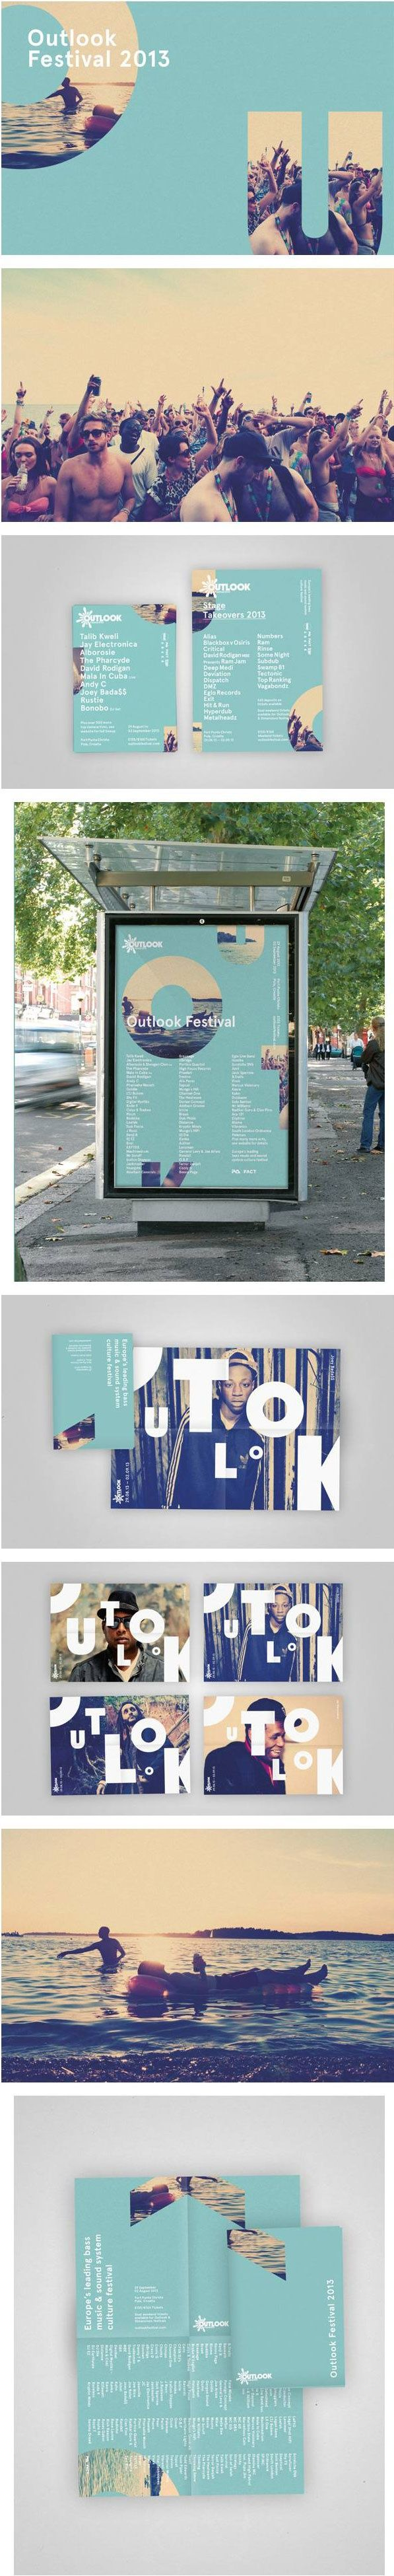 large letter cutouts of big background image, experimental design, interactive, typography, photography, modern, playful, editorial design, poster, magazine layout, brochures, music festival